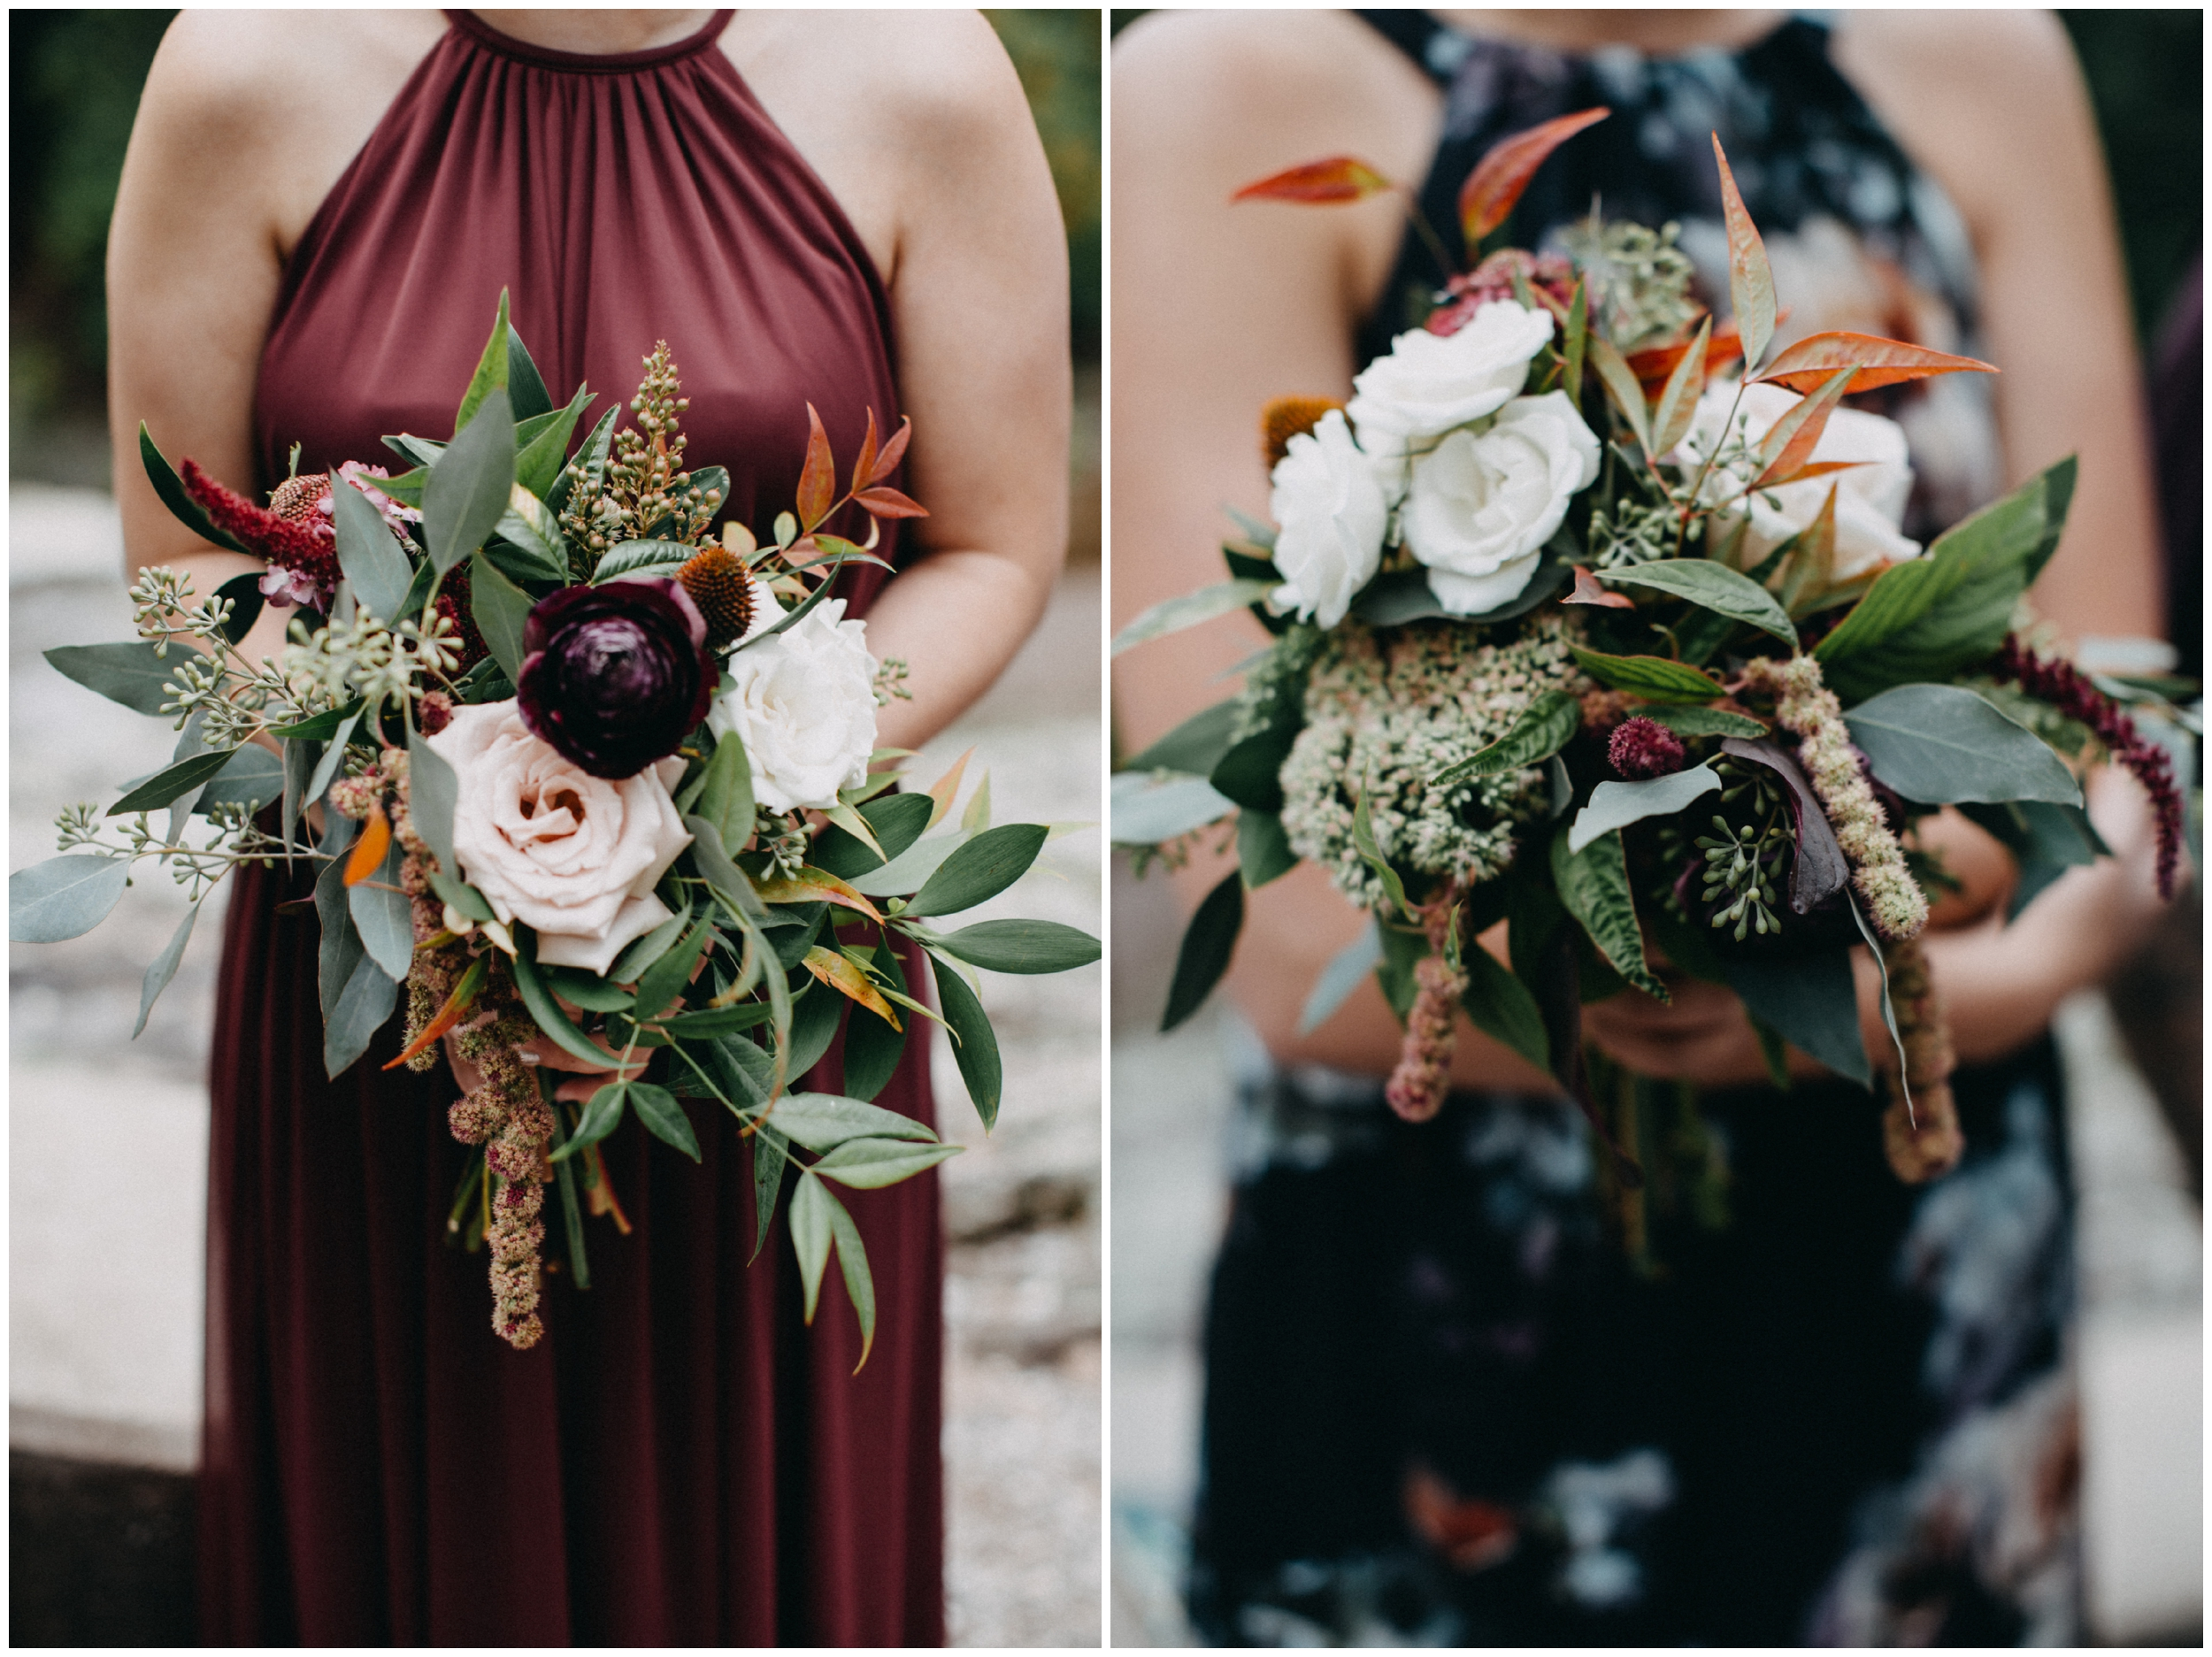 Beautiful bridesmaids wedding bouquet at Lester Park in Duluth